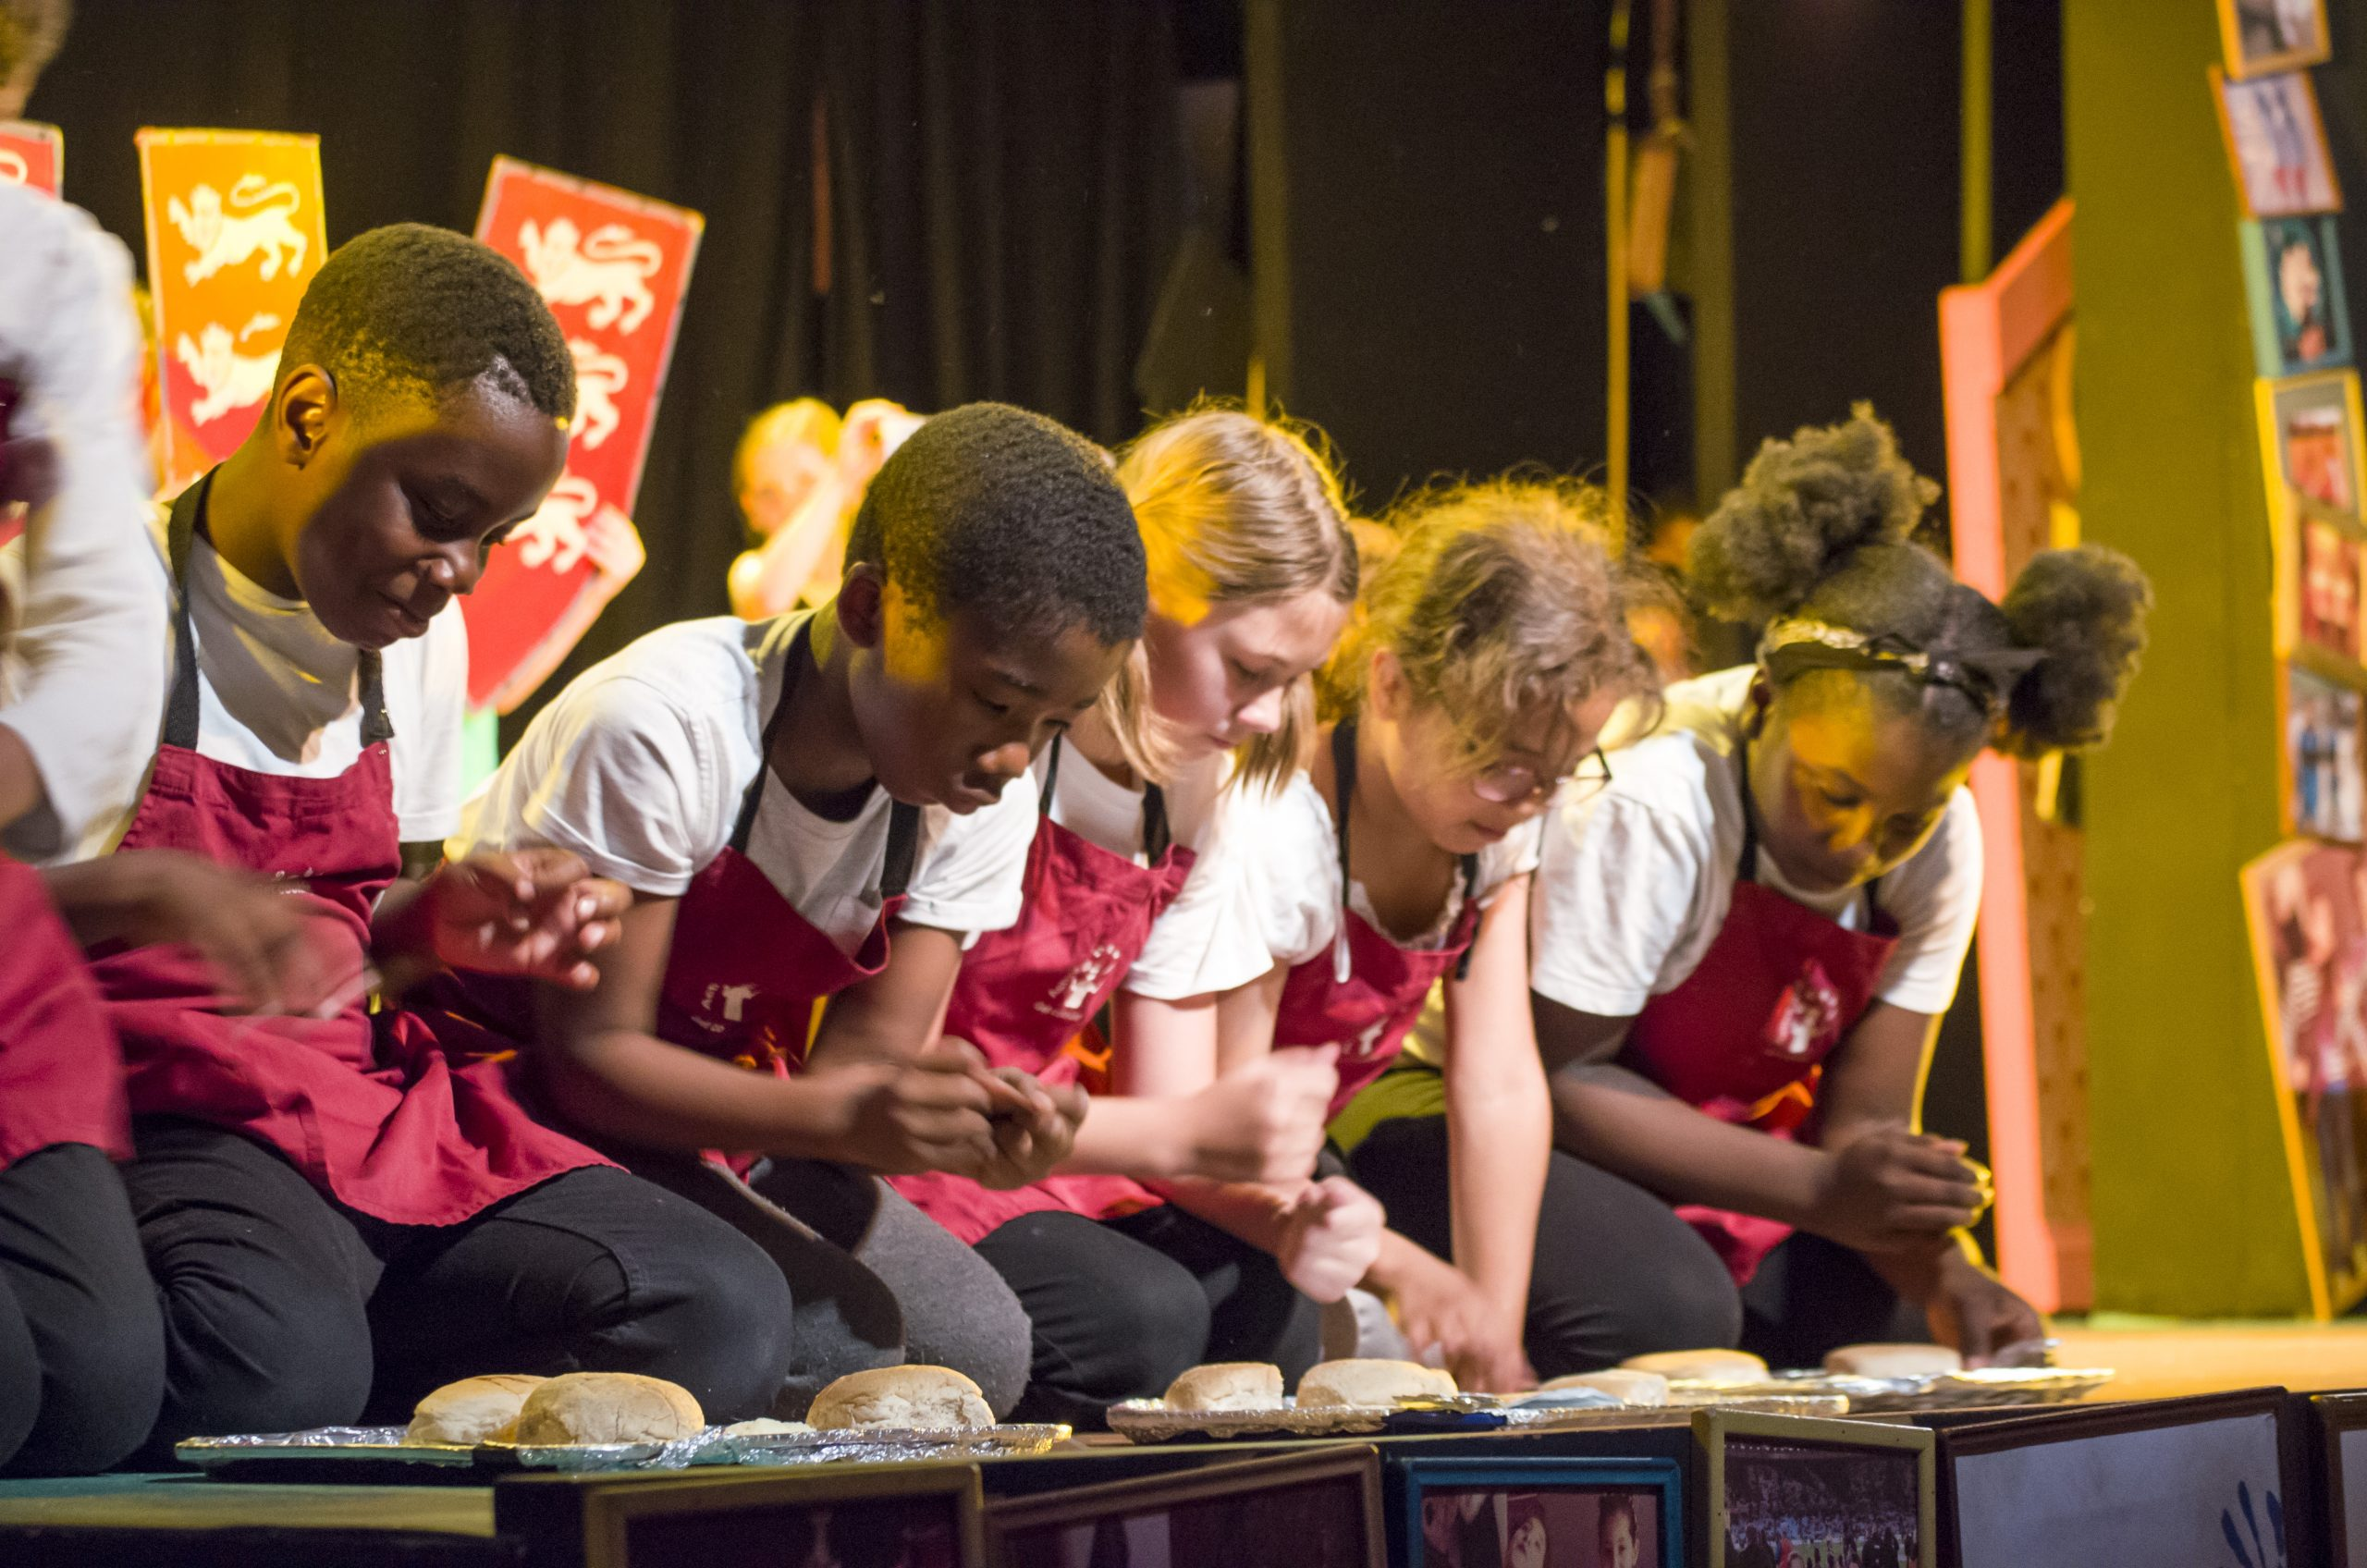 A group of children at the front of the stage kneeling over bread rolls